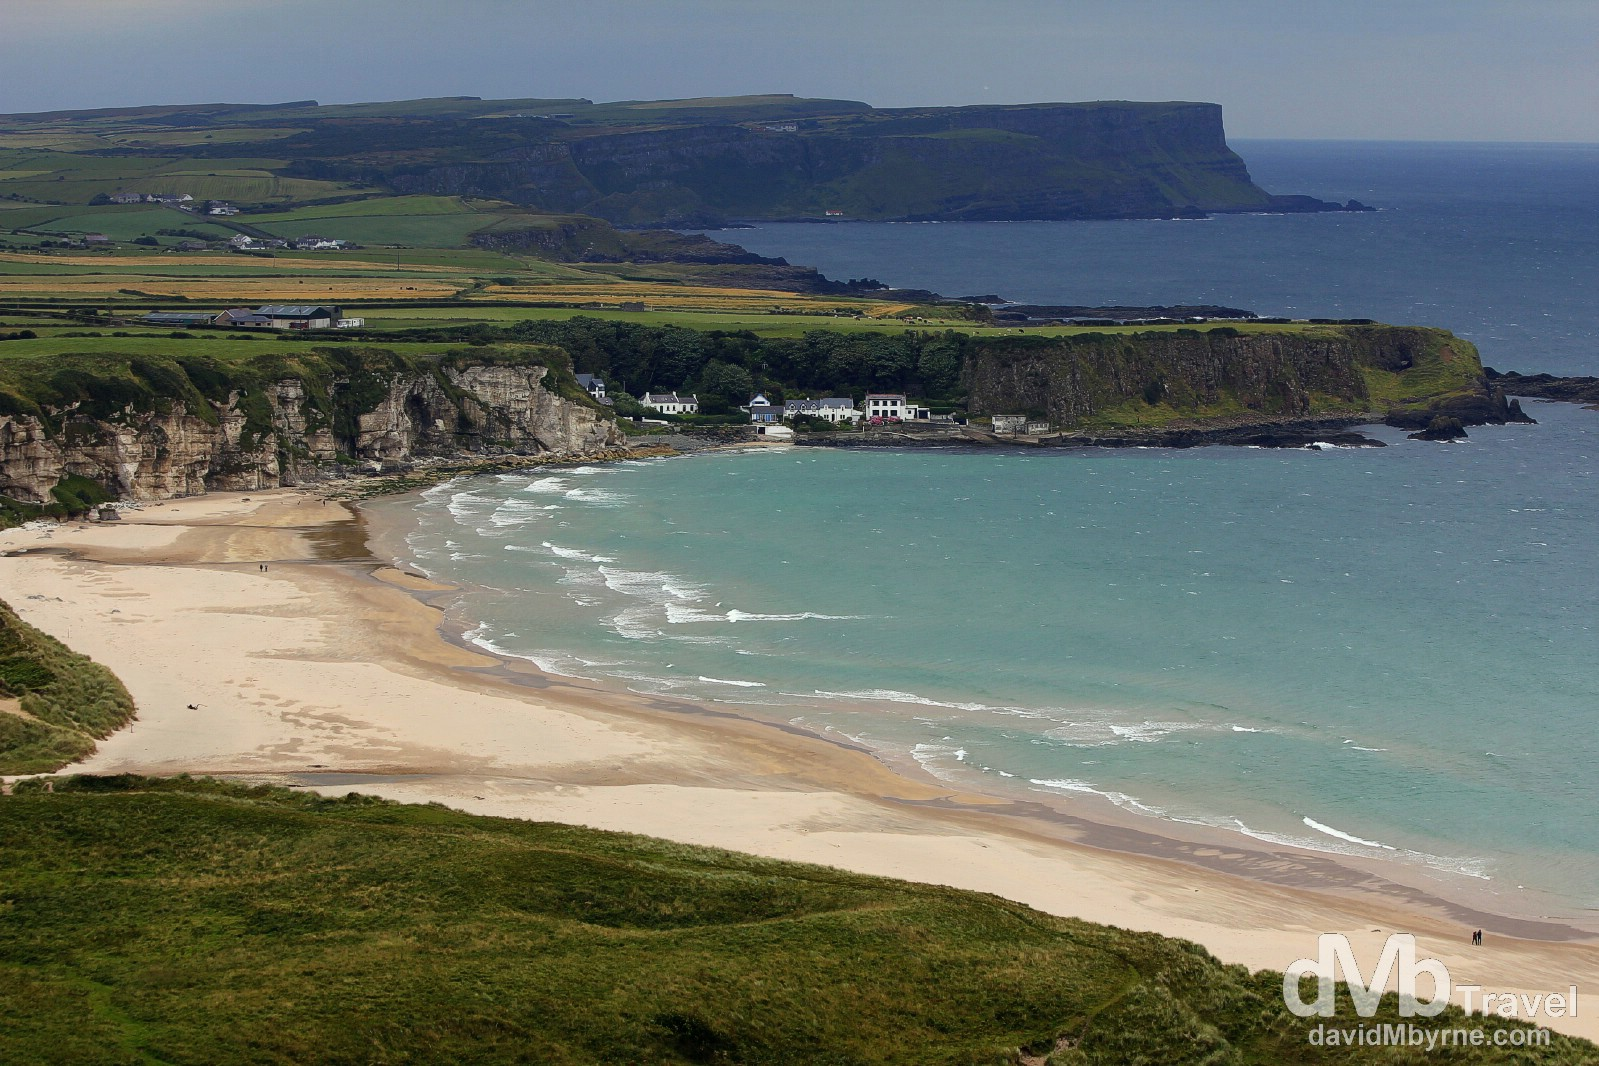 White Park Bay, Causeway Coast, Co. Antrim. Northern Ireland